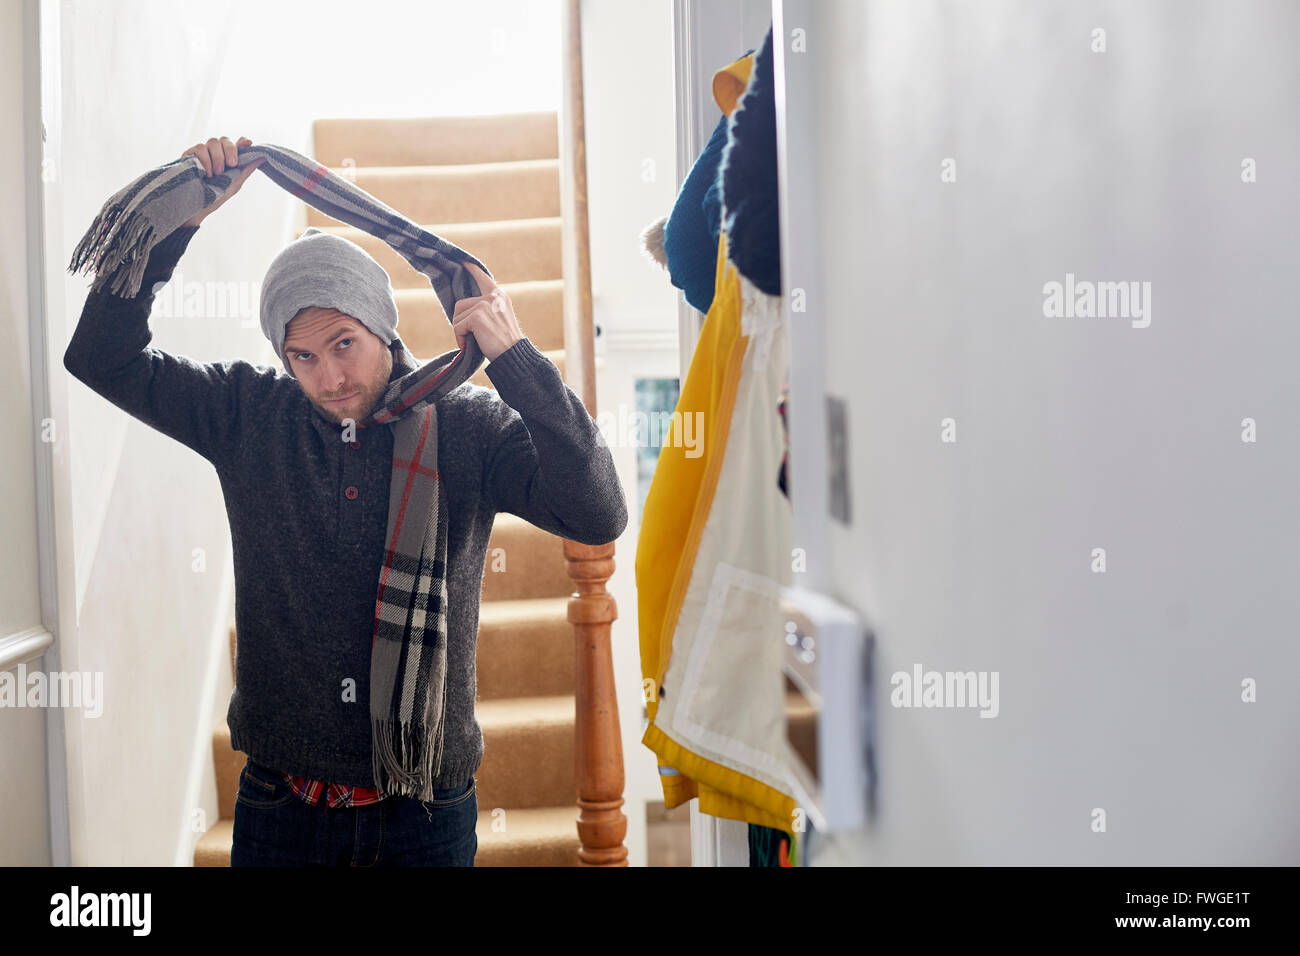 A man in a winter coat, hat and scarf arriving home, taking his scarf off. - Stock Image